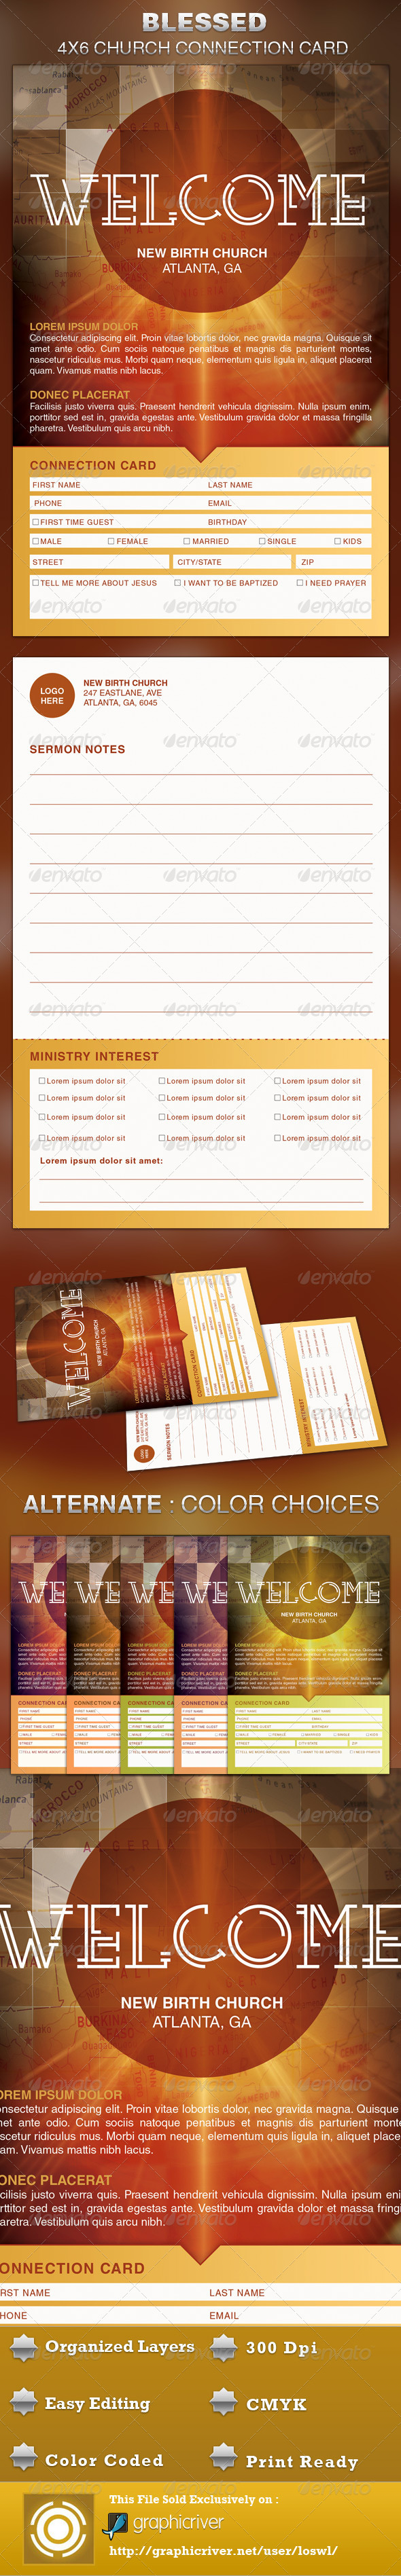 GraphicRiver Blessed Church Connection Card Template 5301984